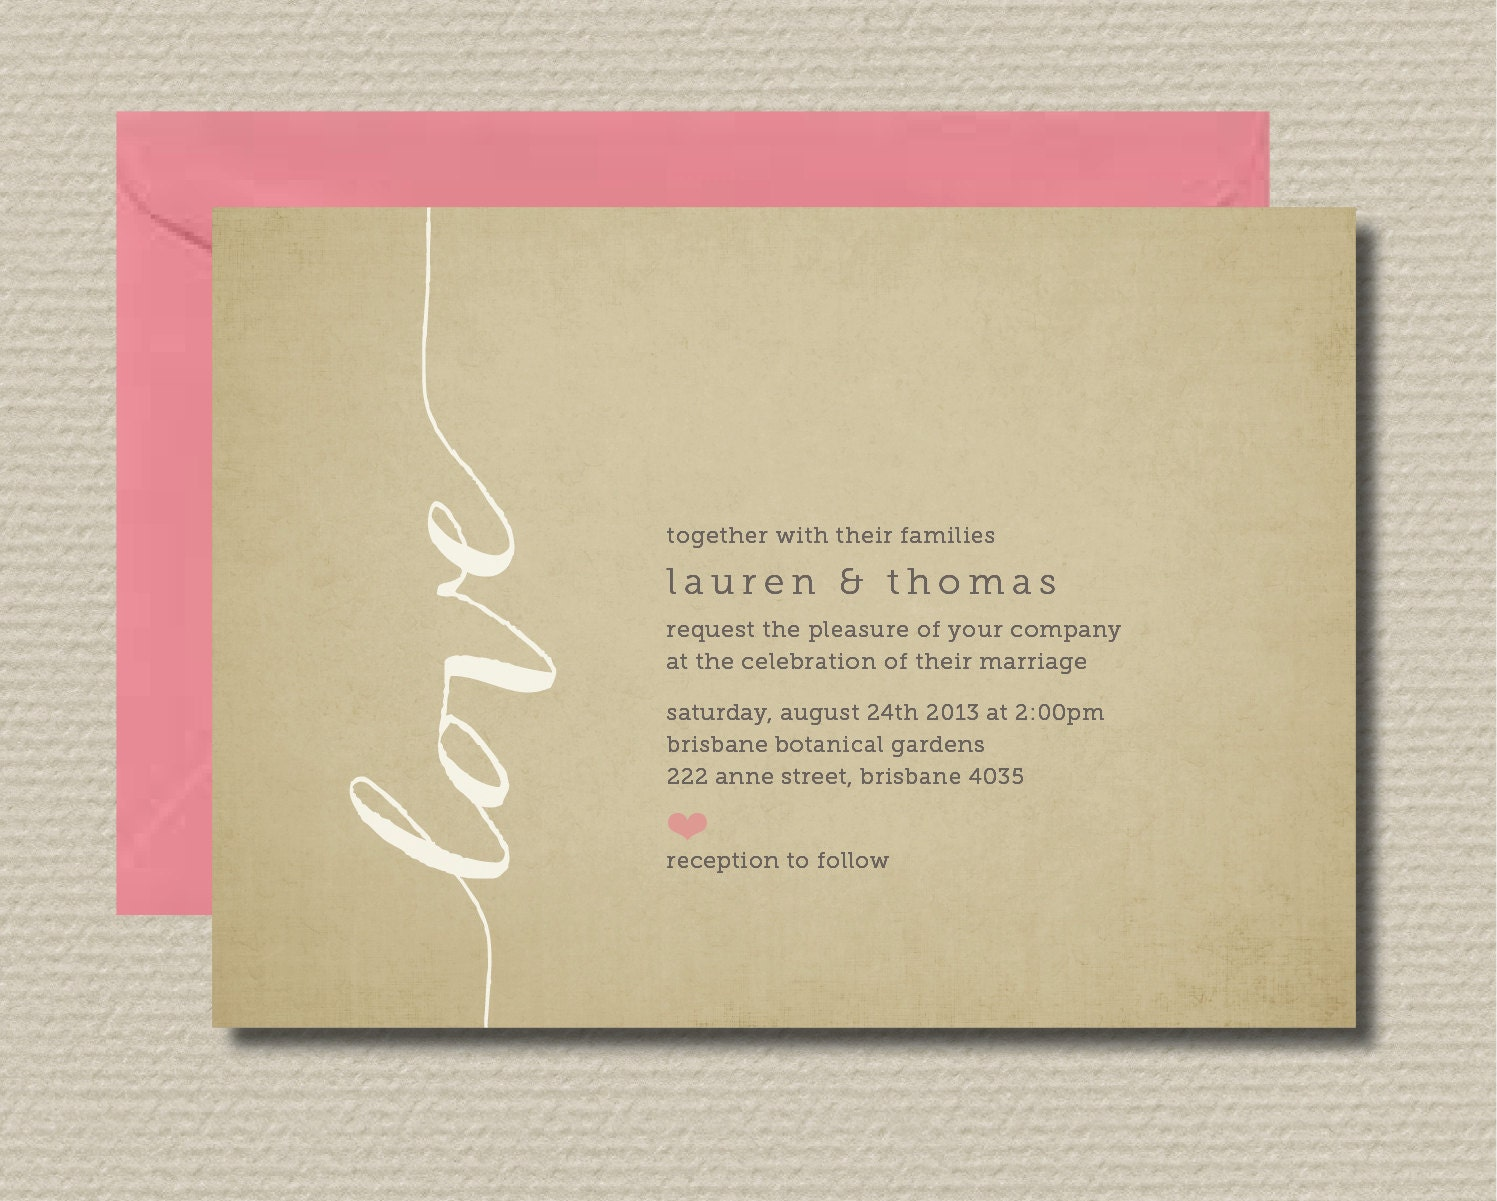 Wedding Invitations Rsvp is one of our best ideas you might choose for invitation design